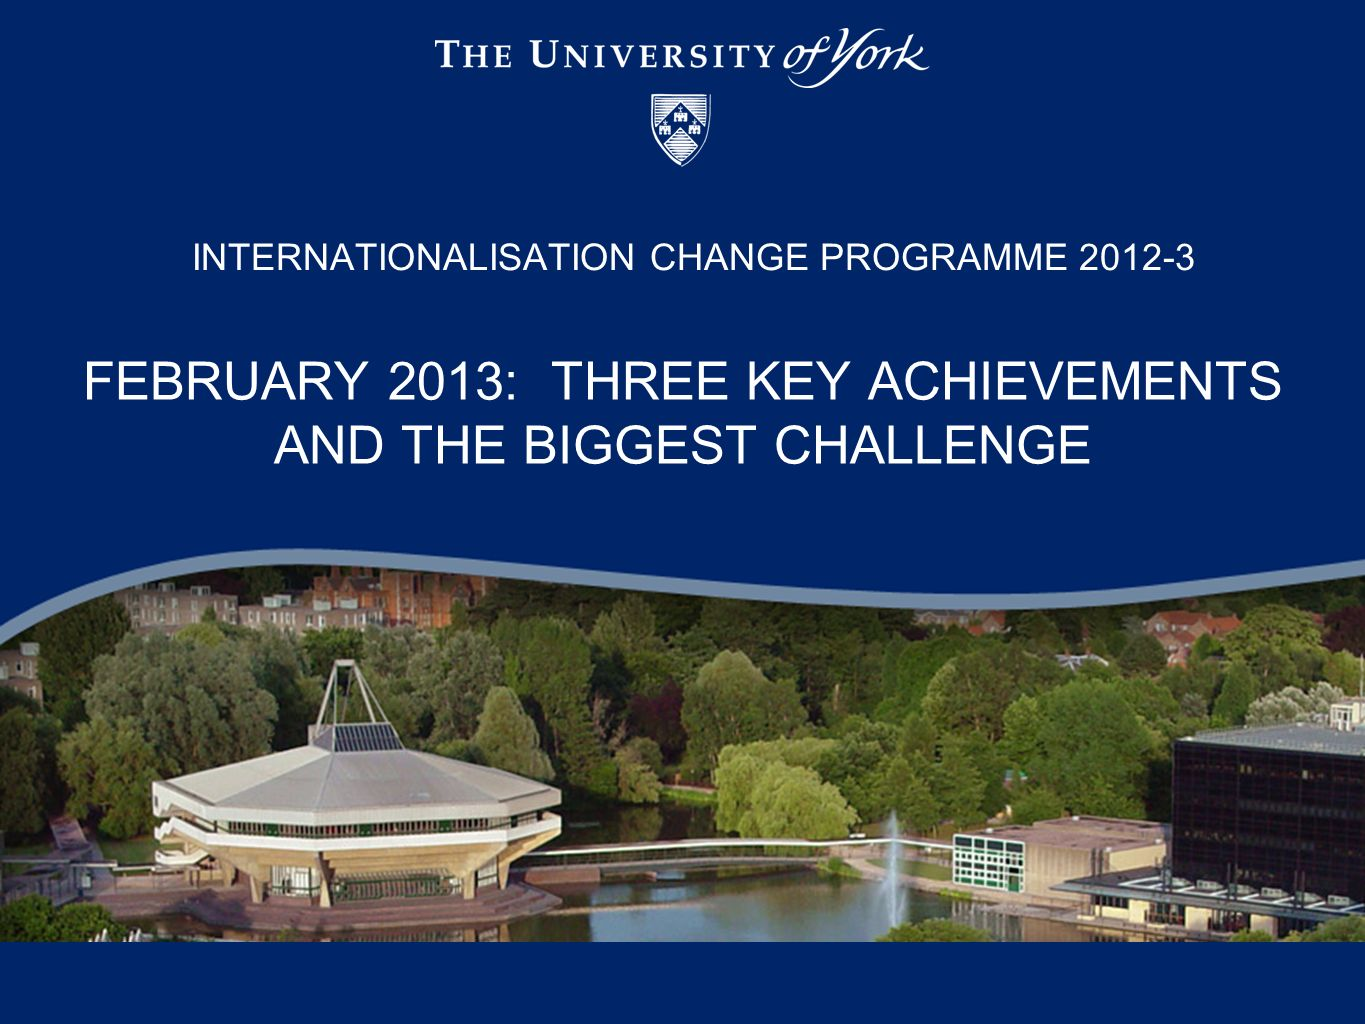 FEBRUARY 2013: THREE KEY ACHIEVEMENTS AND THE BIGGEST CHALLENGE INTERNATIONALISATION CHANGE PROGRAMME 2012-3